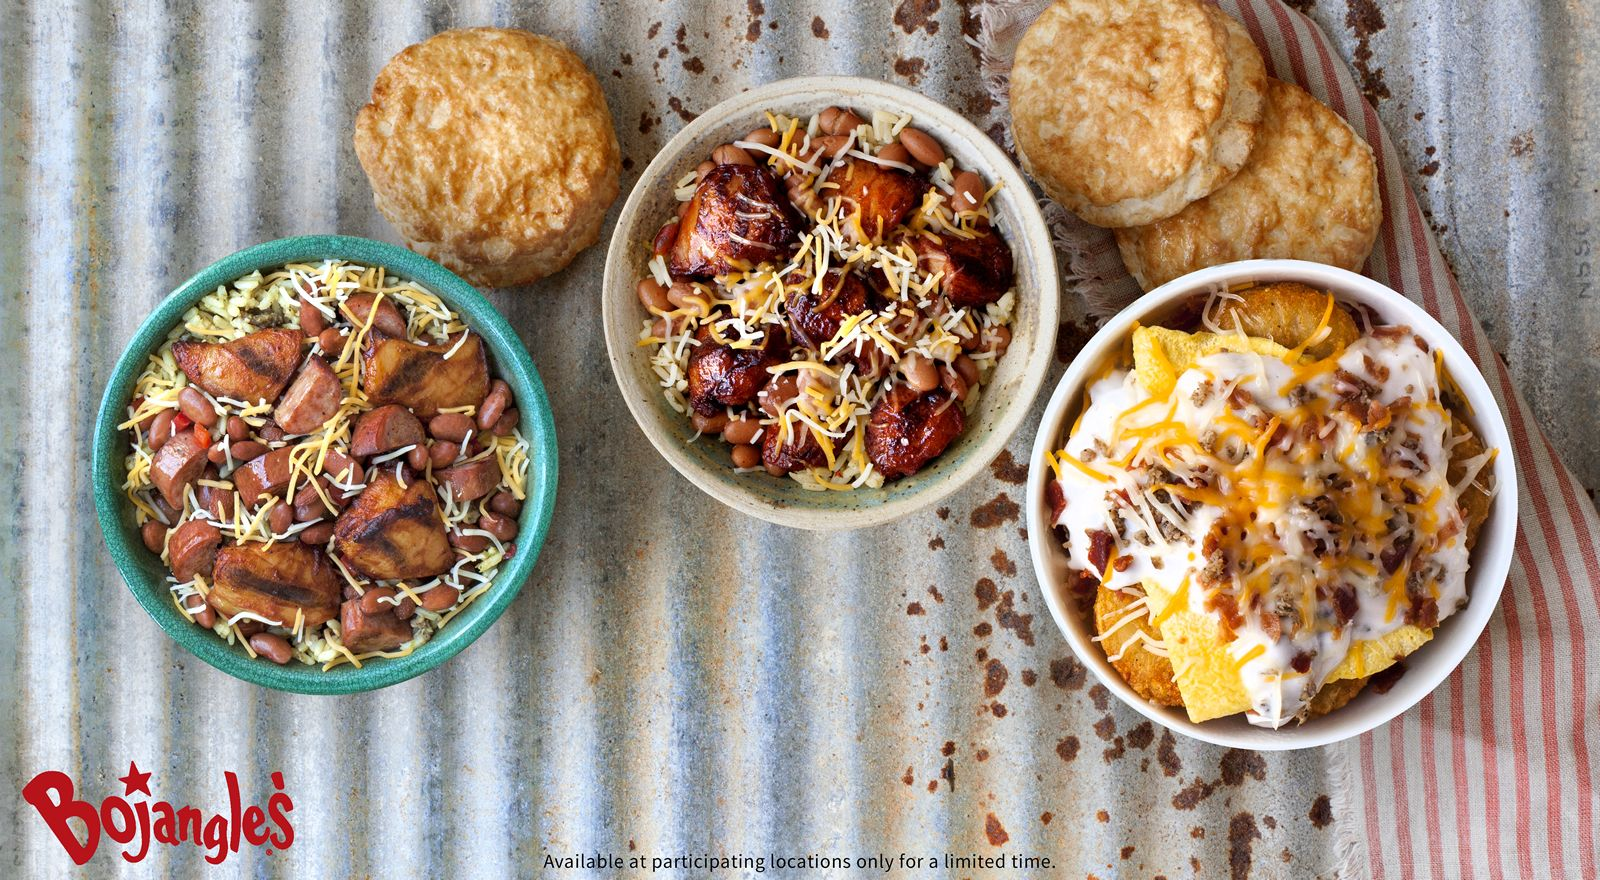 Running On Empty? Fill up with a Hearty Bojangles' Bowl